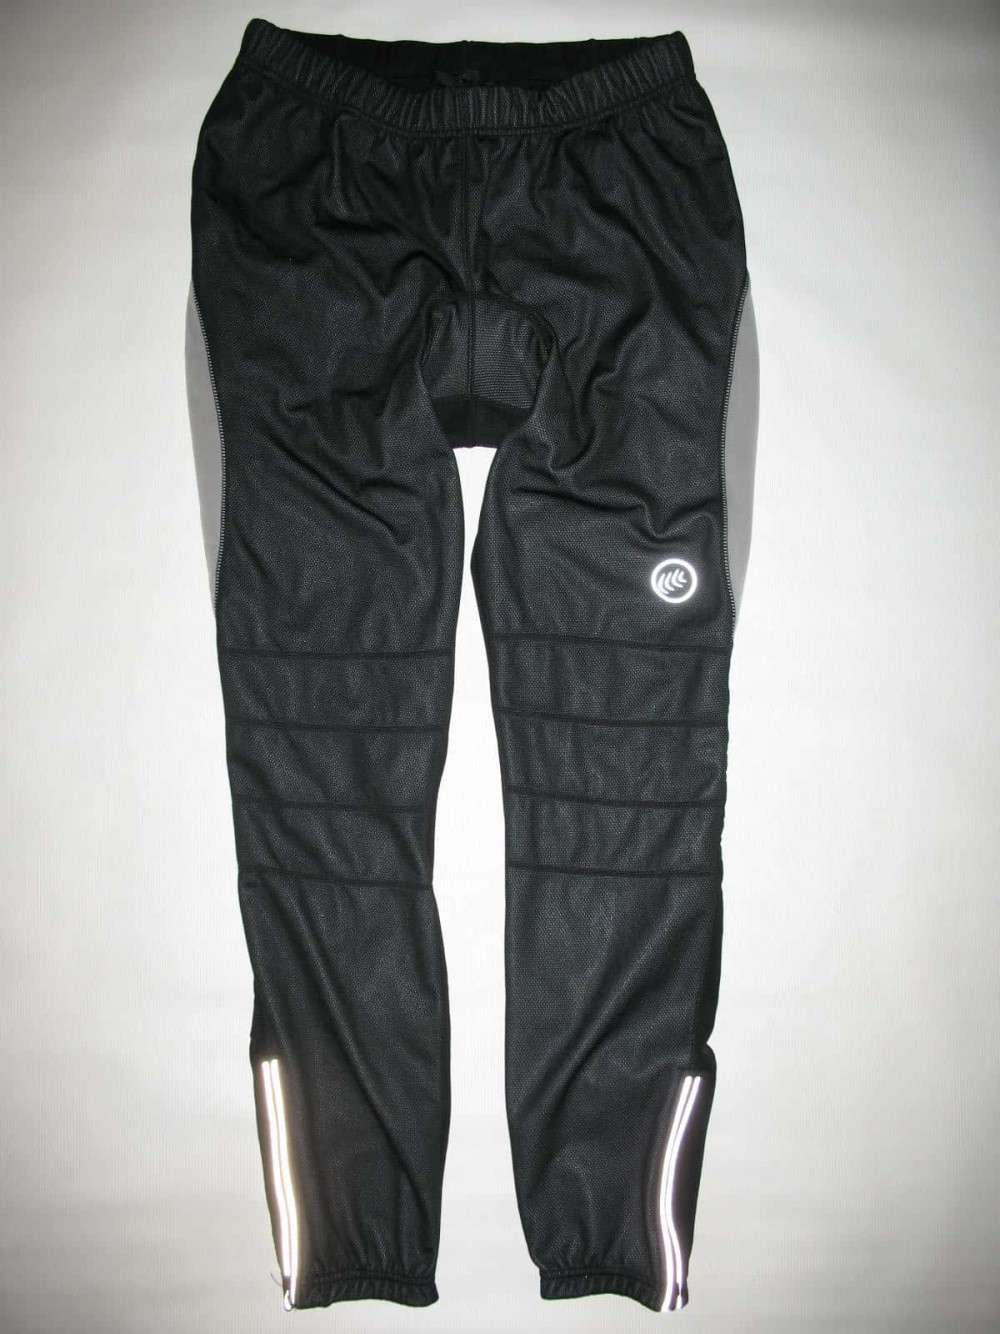 Велобрюки CRANE windstopper cycling pants unisex (размер L) - 1